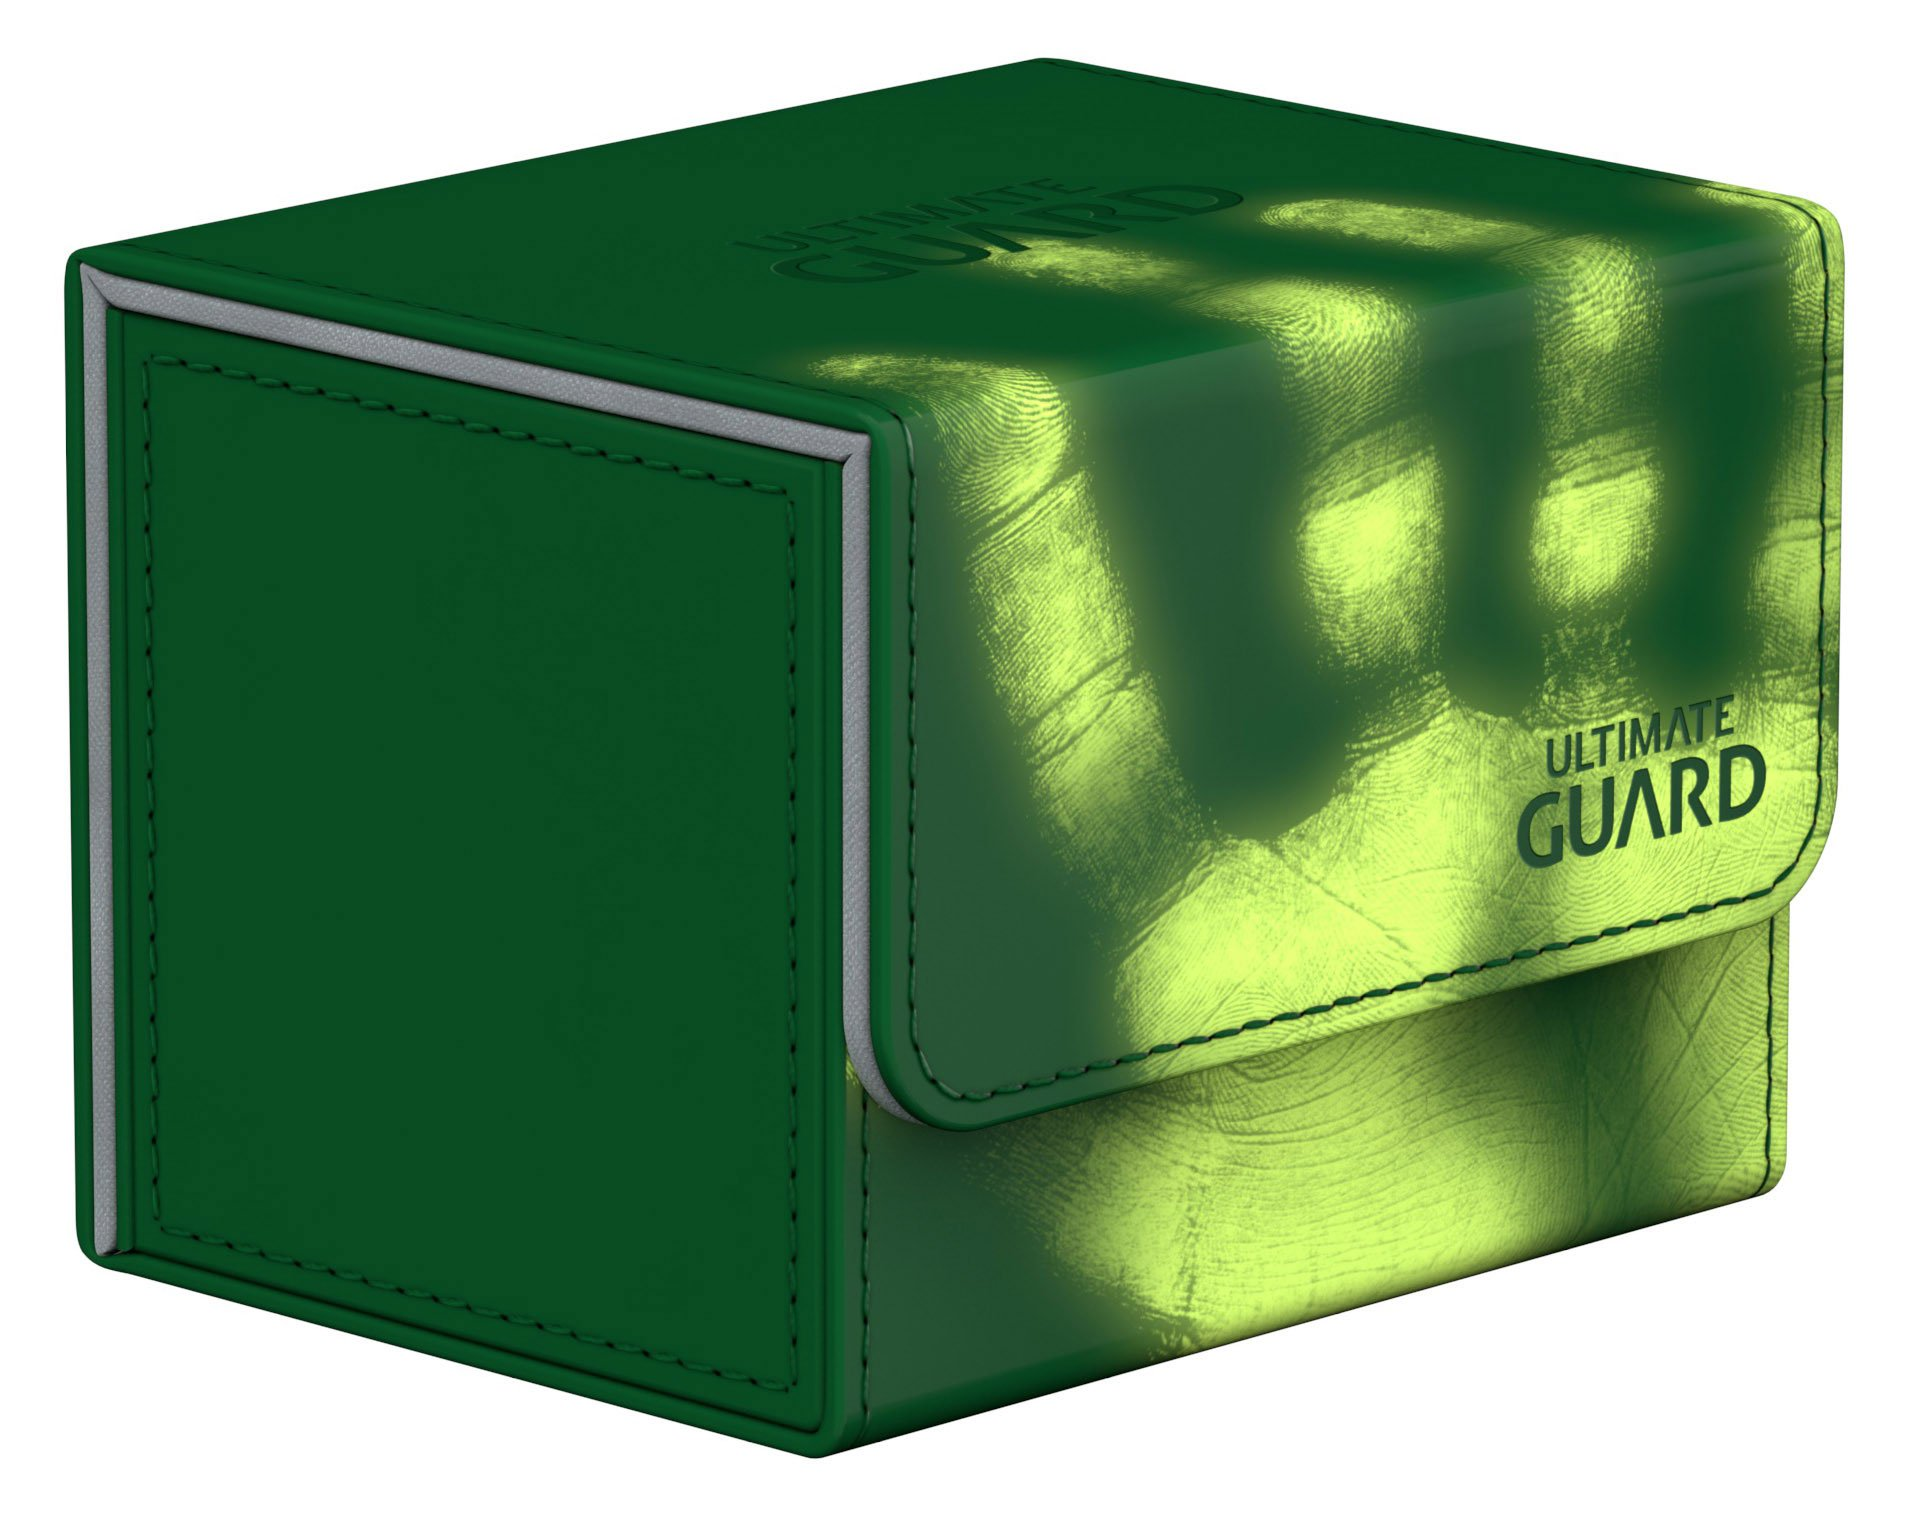 Ultimate Guard Deck Box: Sidewinder 100+ ChromiaSkin Green by Ultimate Guard